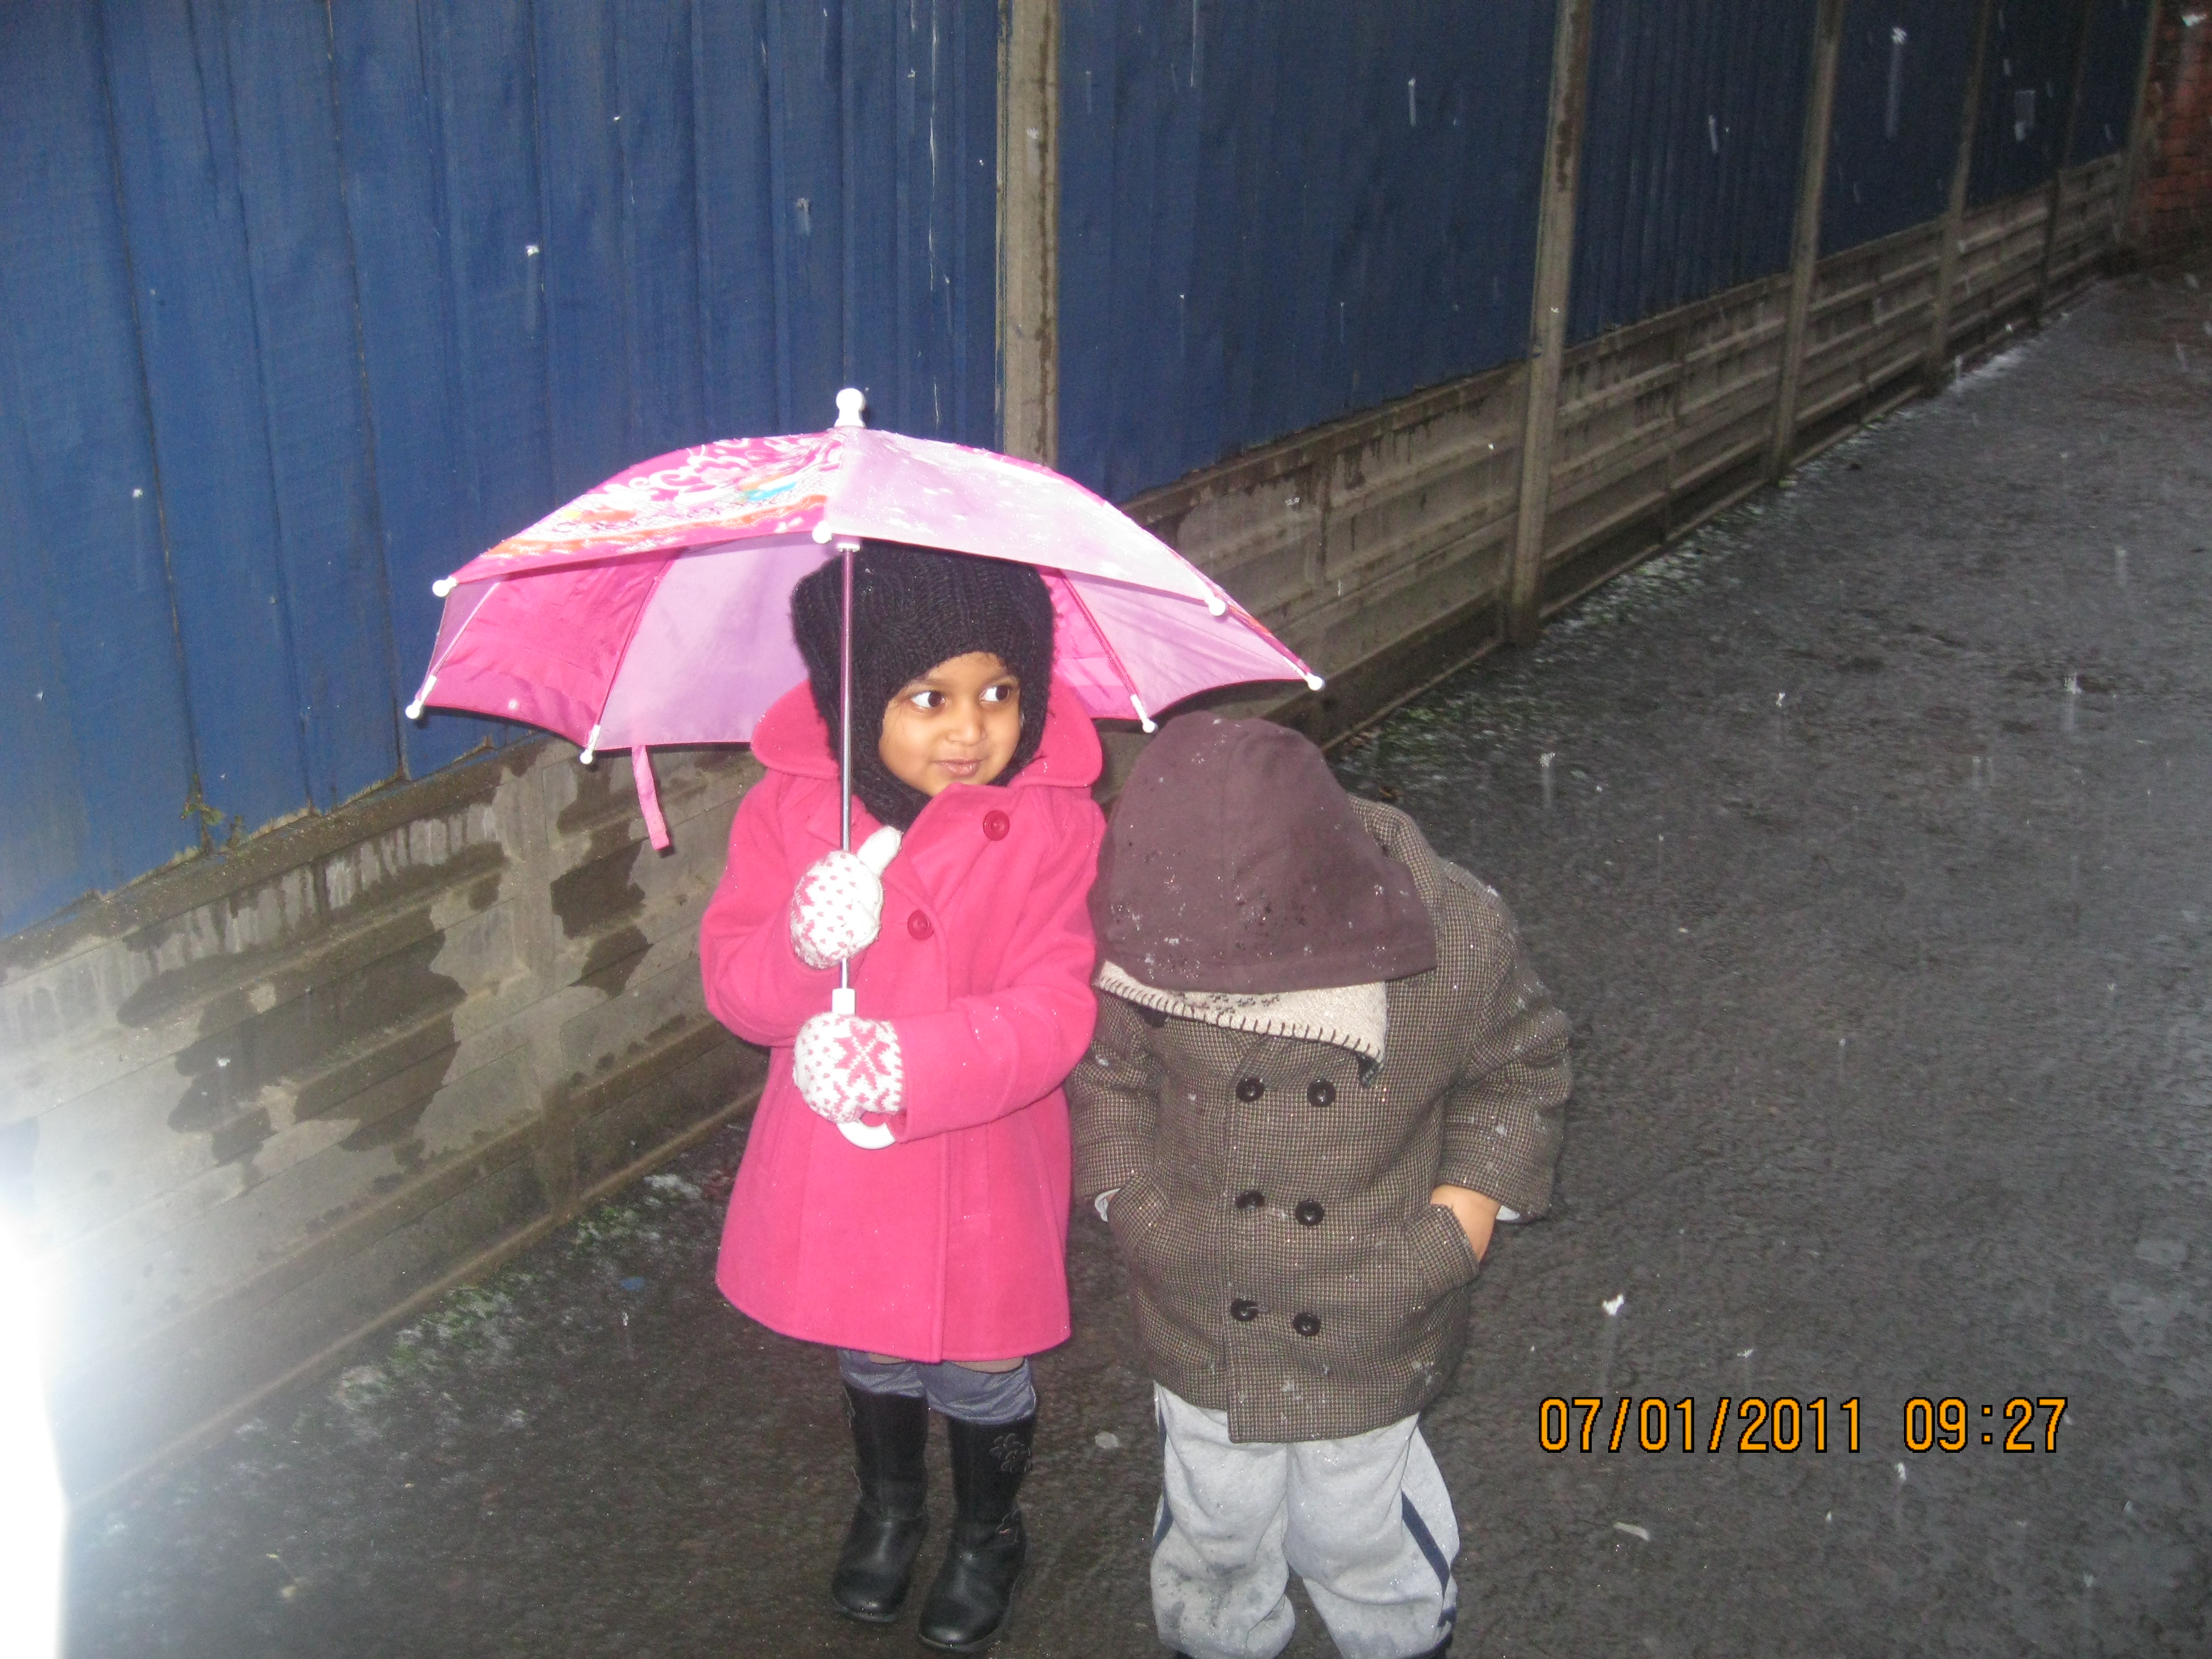 Girl with an umbrella at Early Learners' Nursery School, Leicester